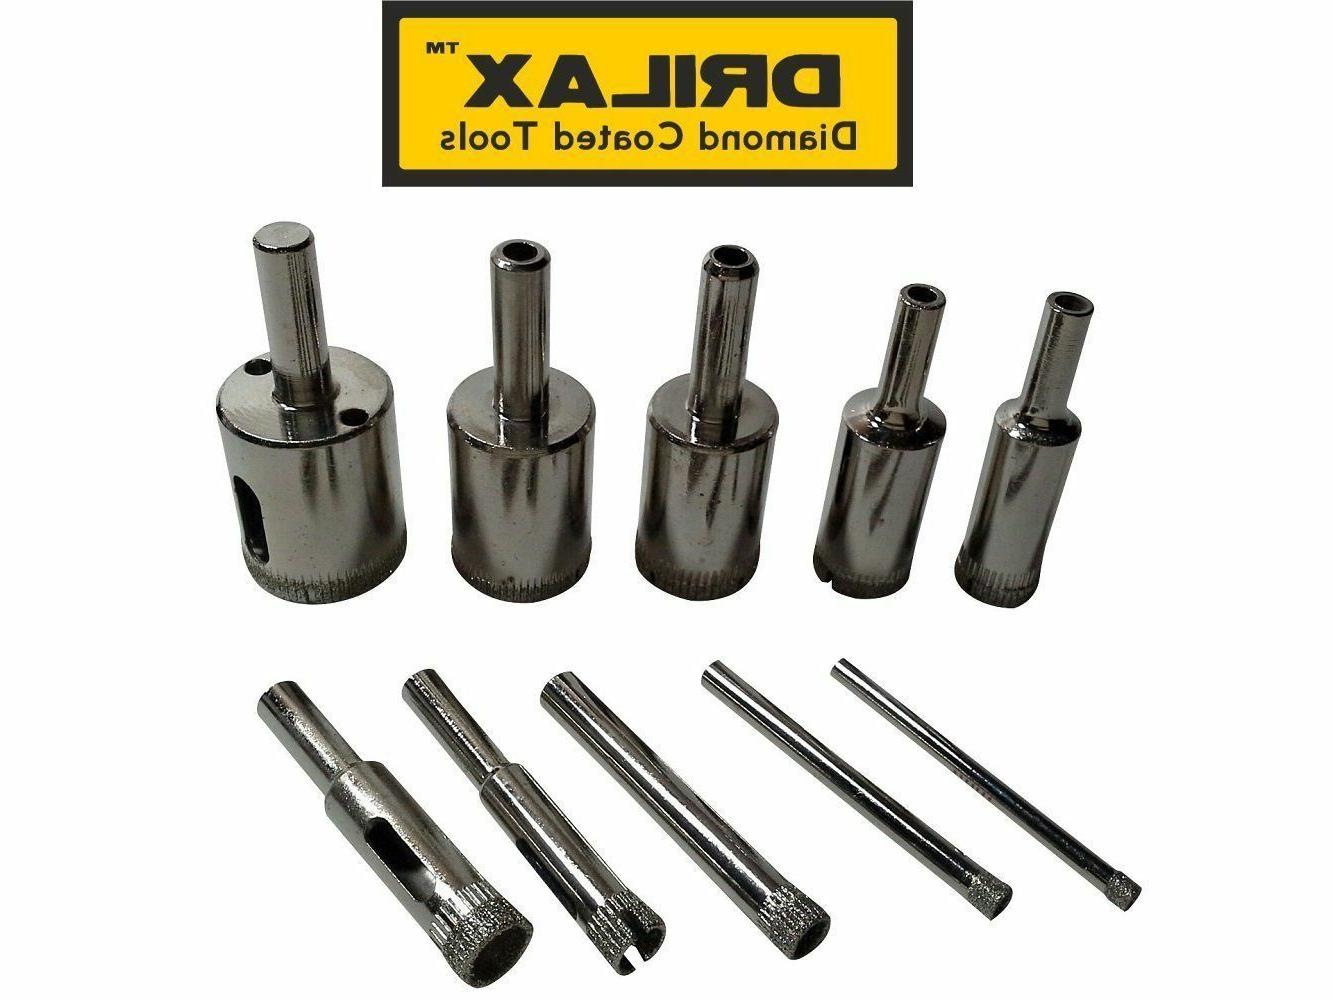 "Drilax 10 Pcs Diamond Drill Bit Set from 5/32"", 3/16"", 1/4"","